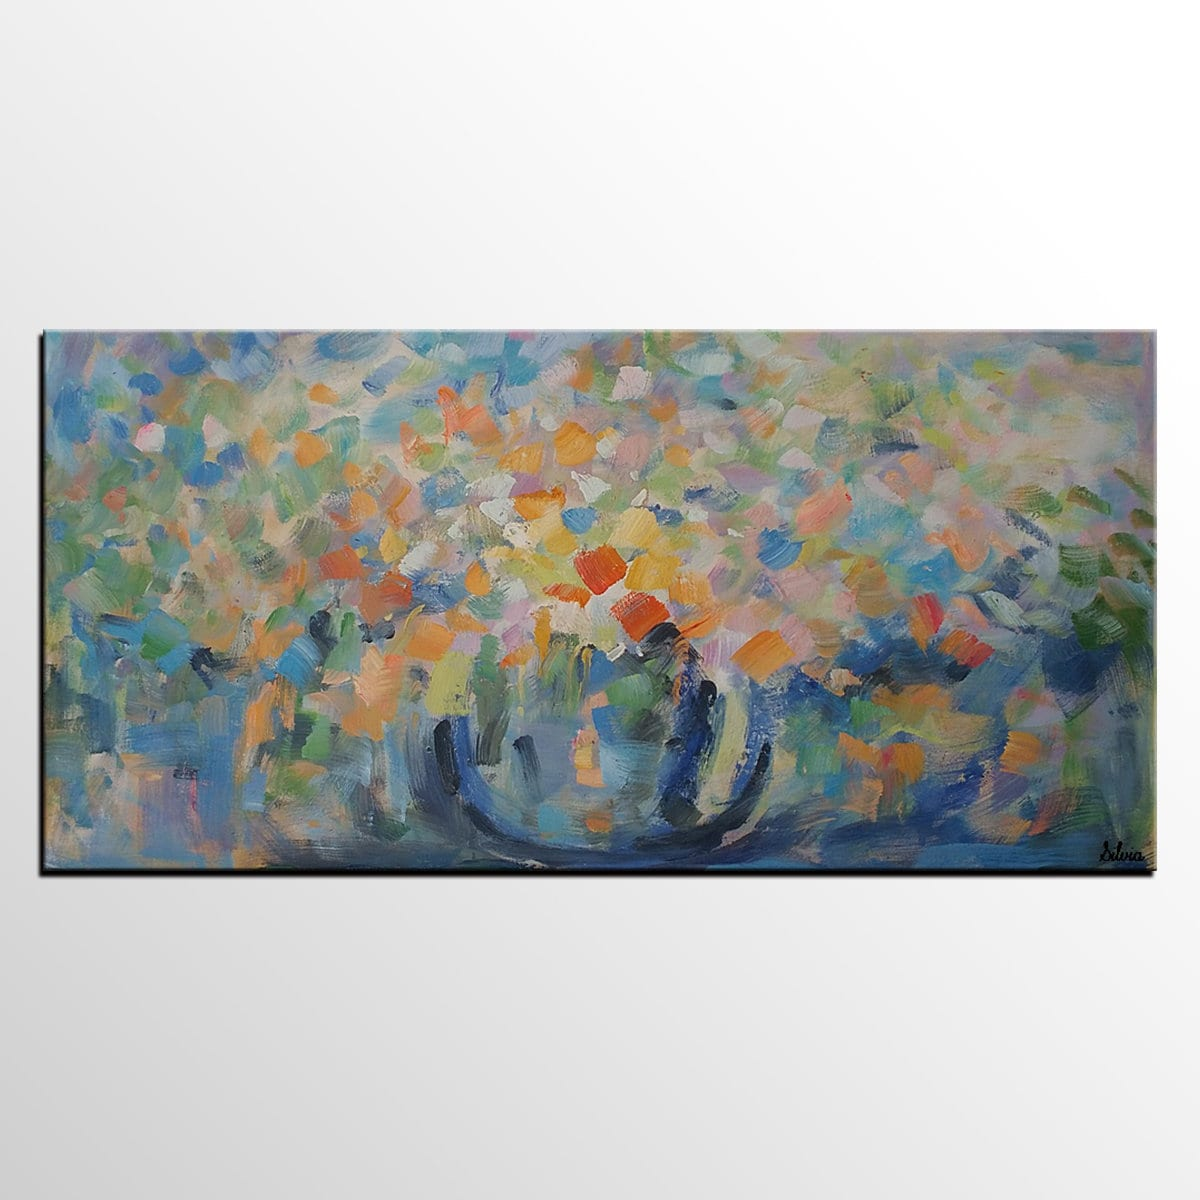 Flower still life painting bedroom wall art abstract painting original artwork canvas painting abstract canvas art oil painting